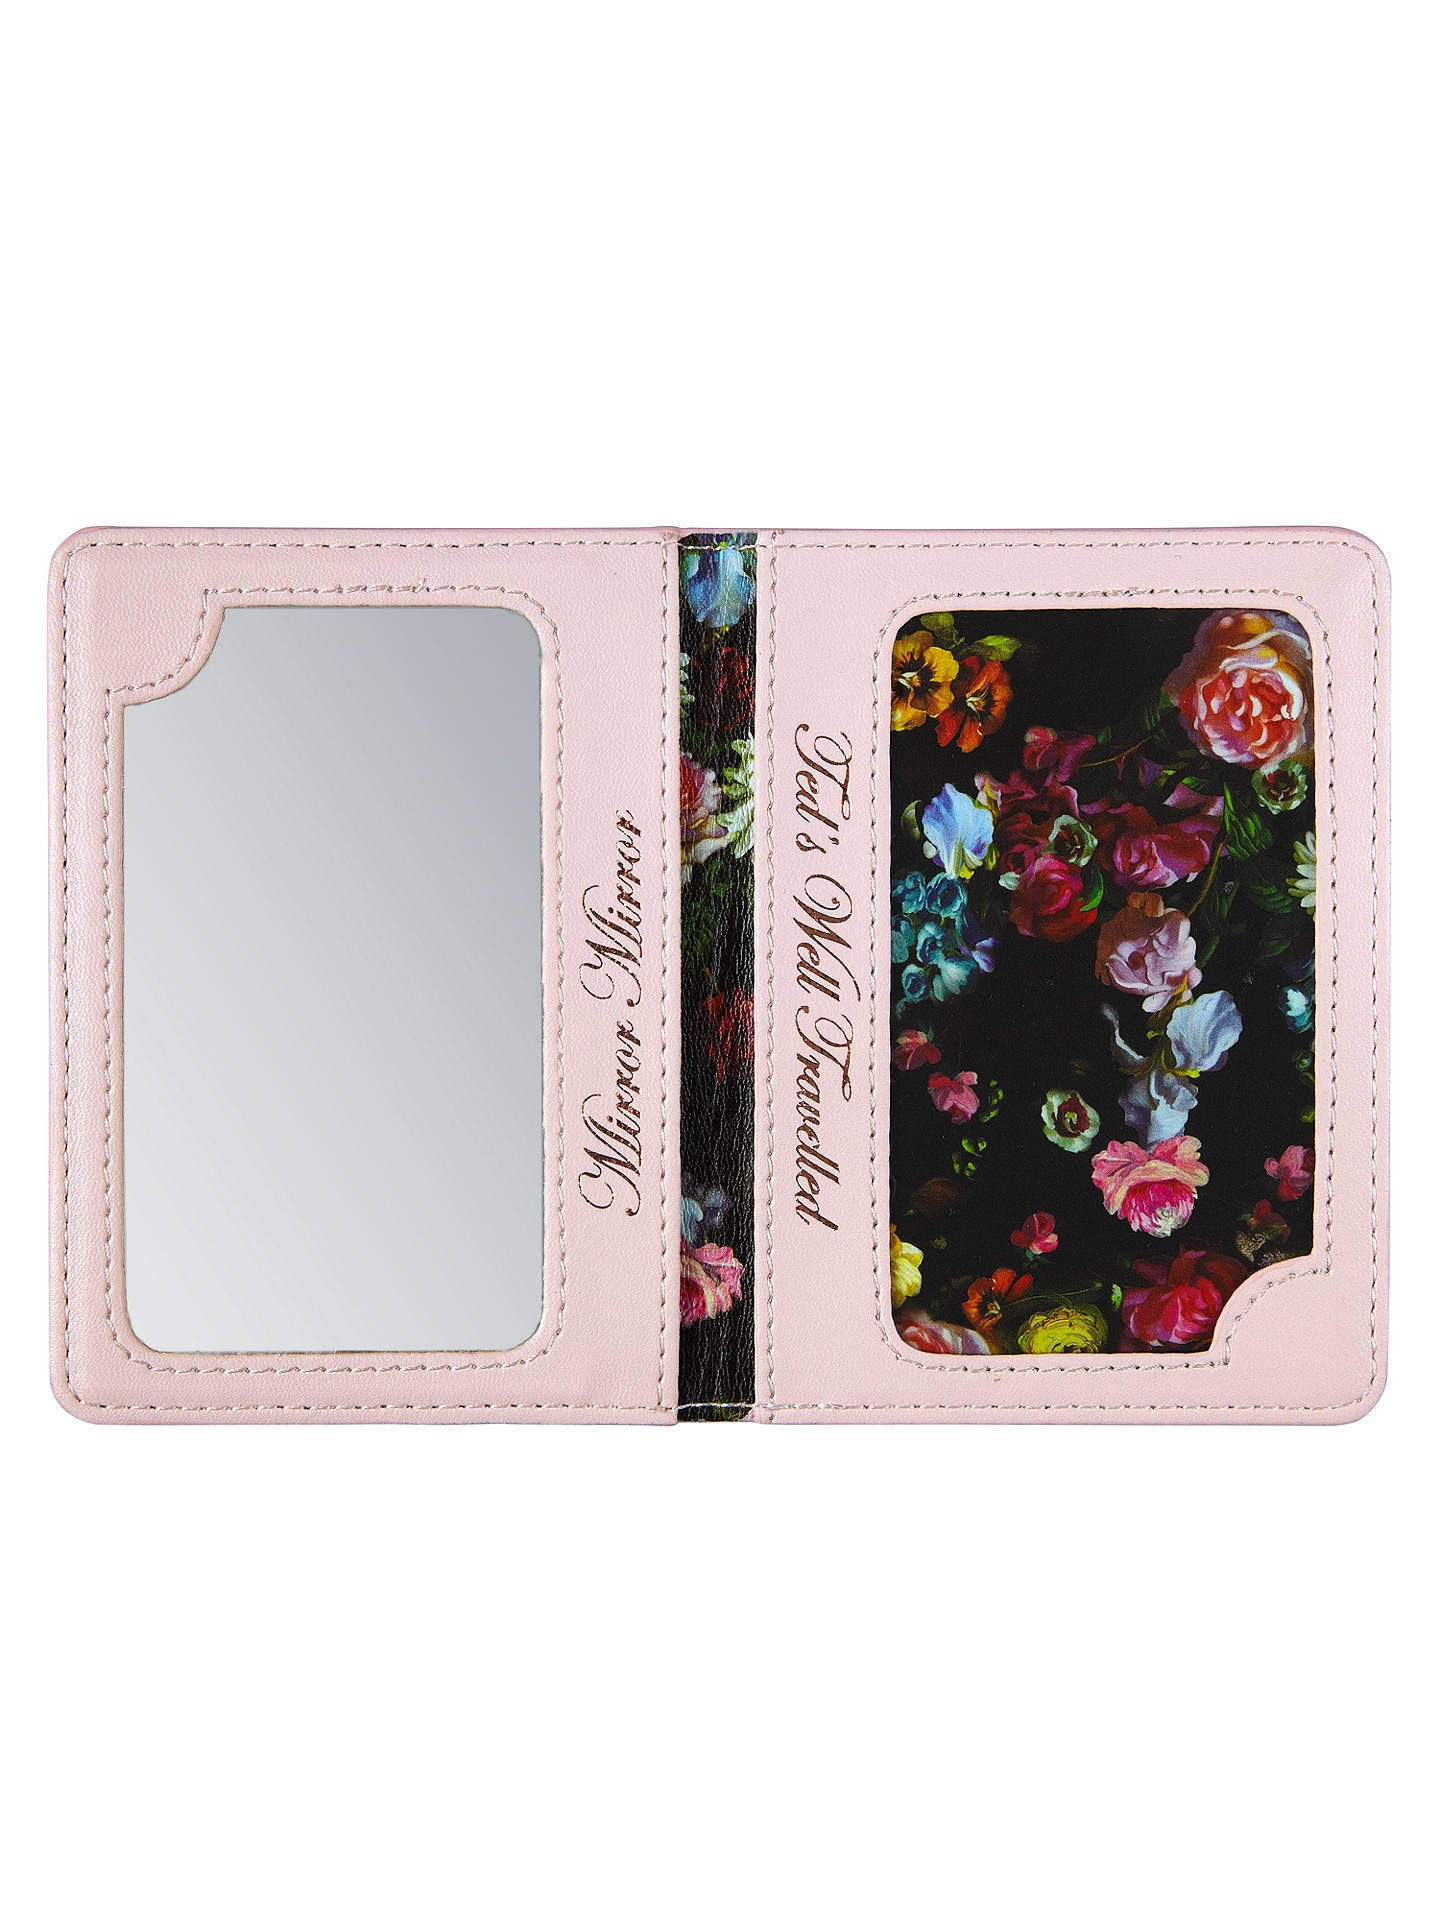 huge discount 75e92 c64f3 Ted Baker Travel Card Holder and Mirror at John Lewis & Partners